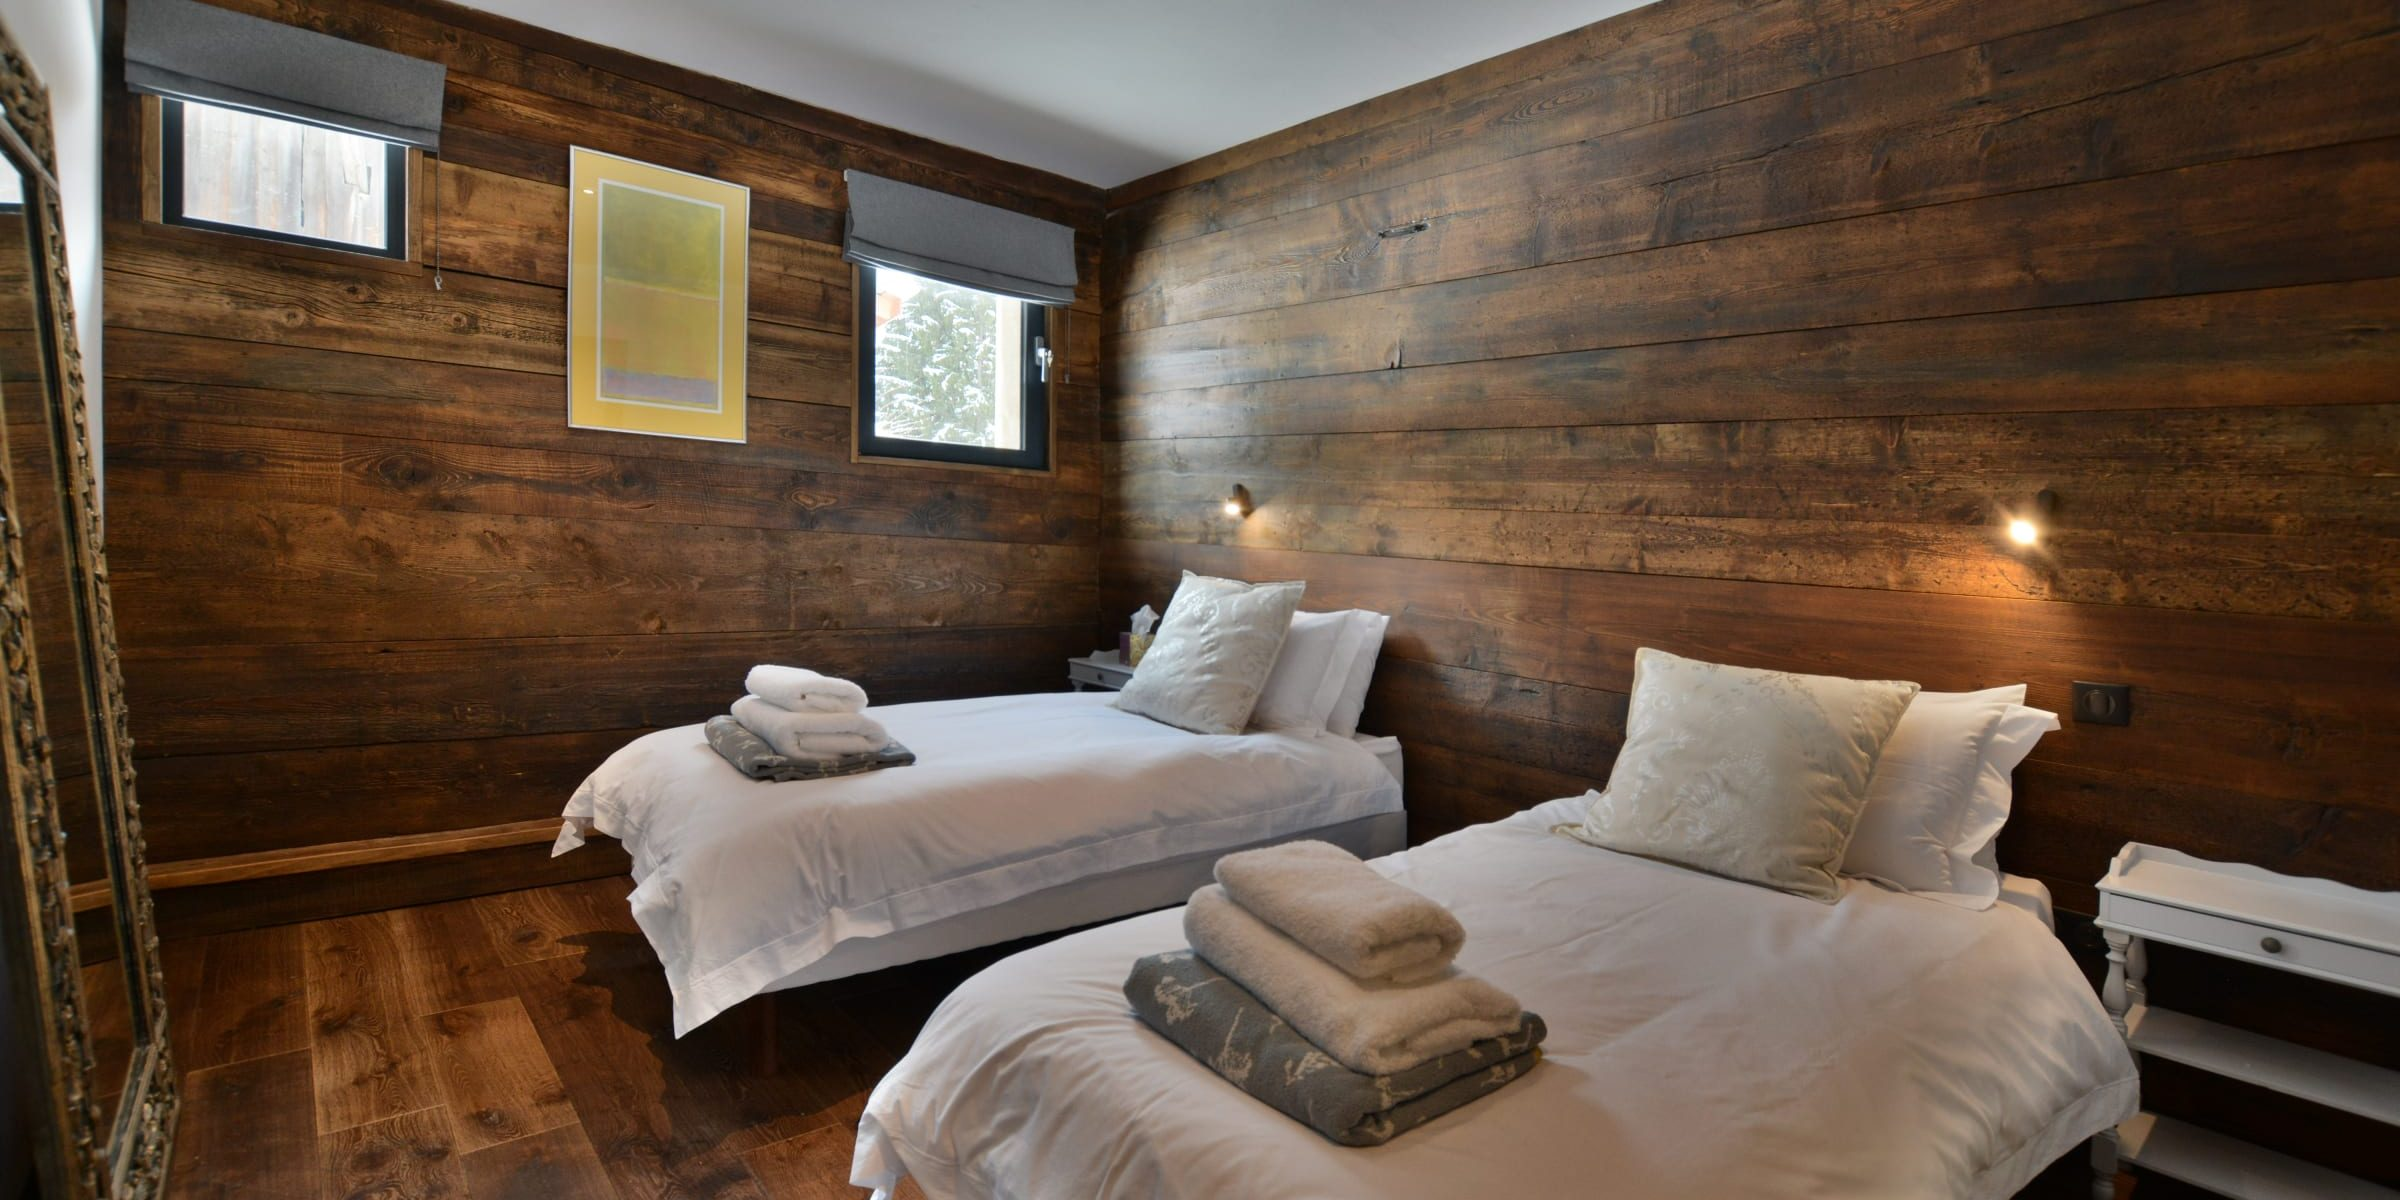 Ski chalet with urban nature wood floors 3